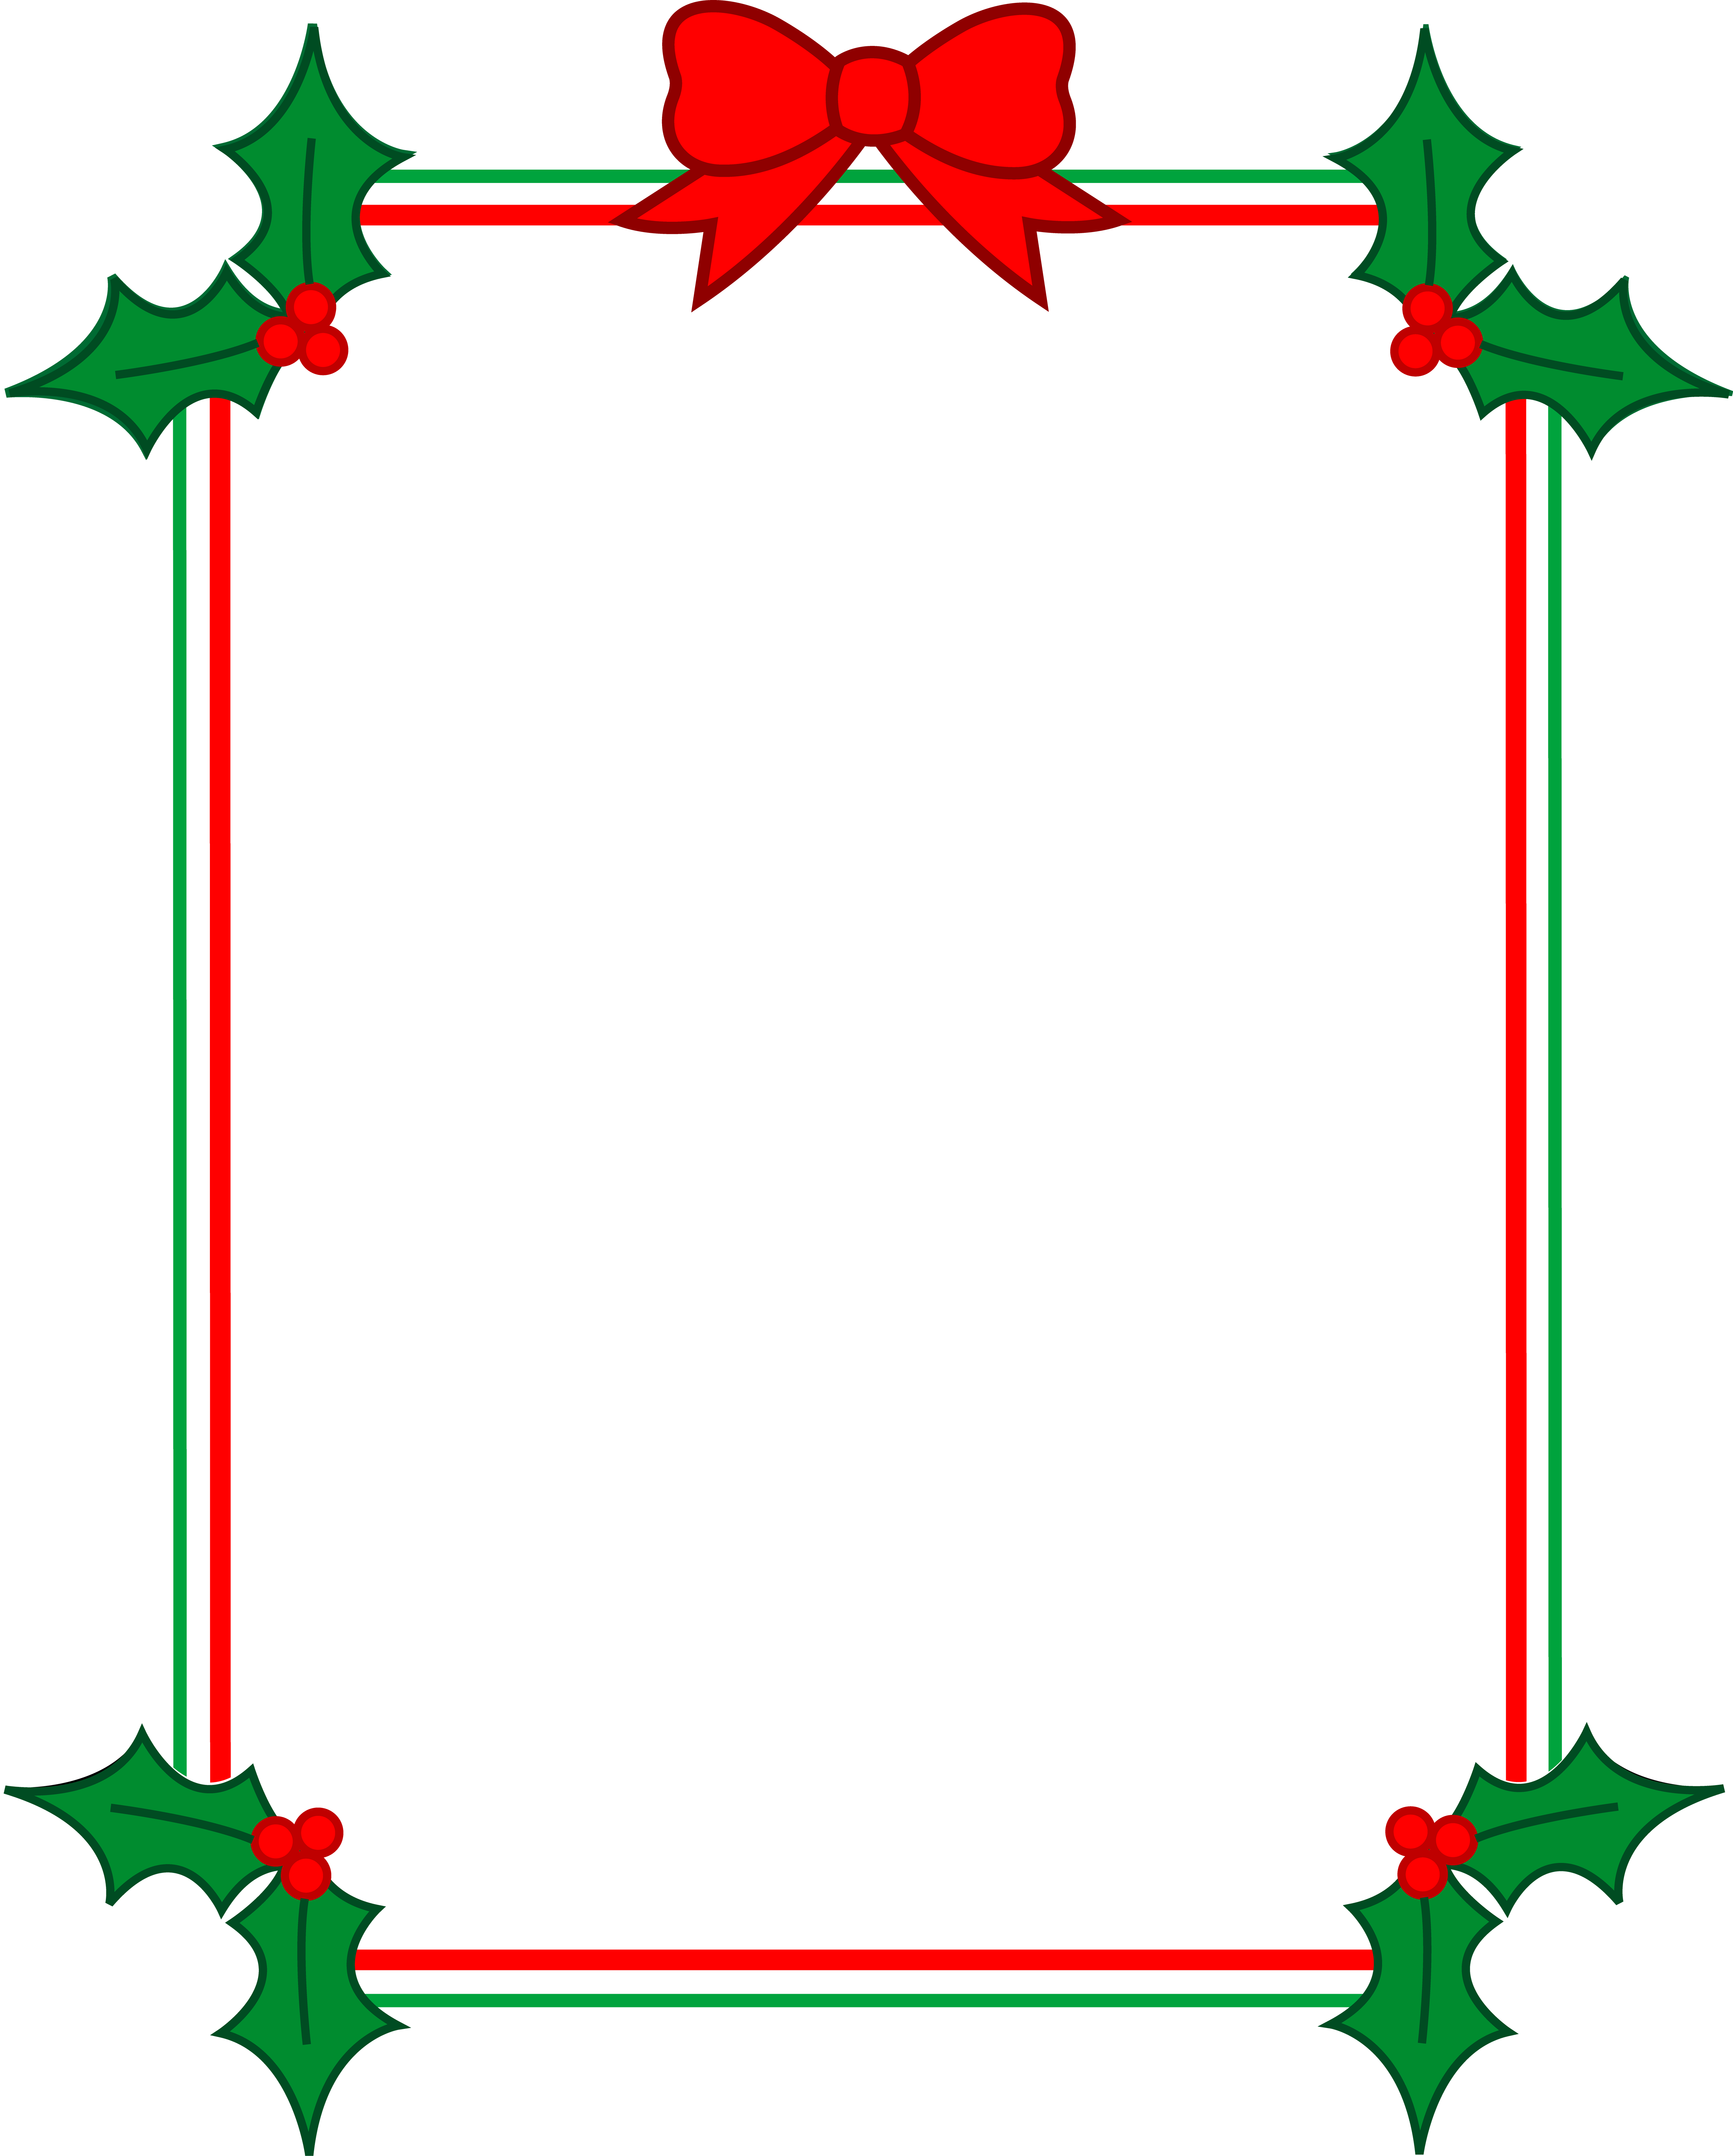 Christmas images clipart free download banner black and white stock Christmas clipart free borders clipart images gallery for free ... banner black and white stock